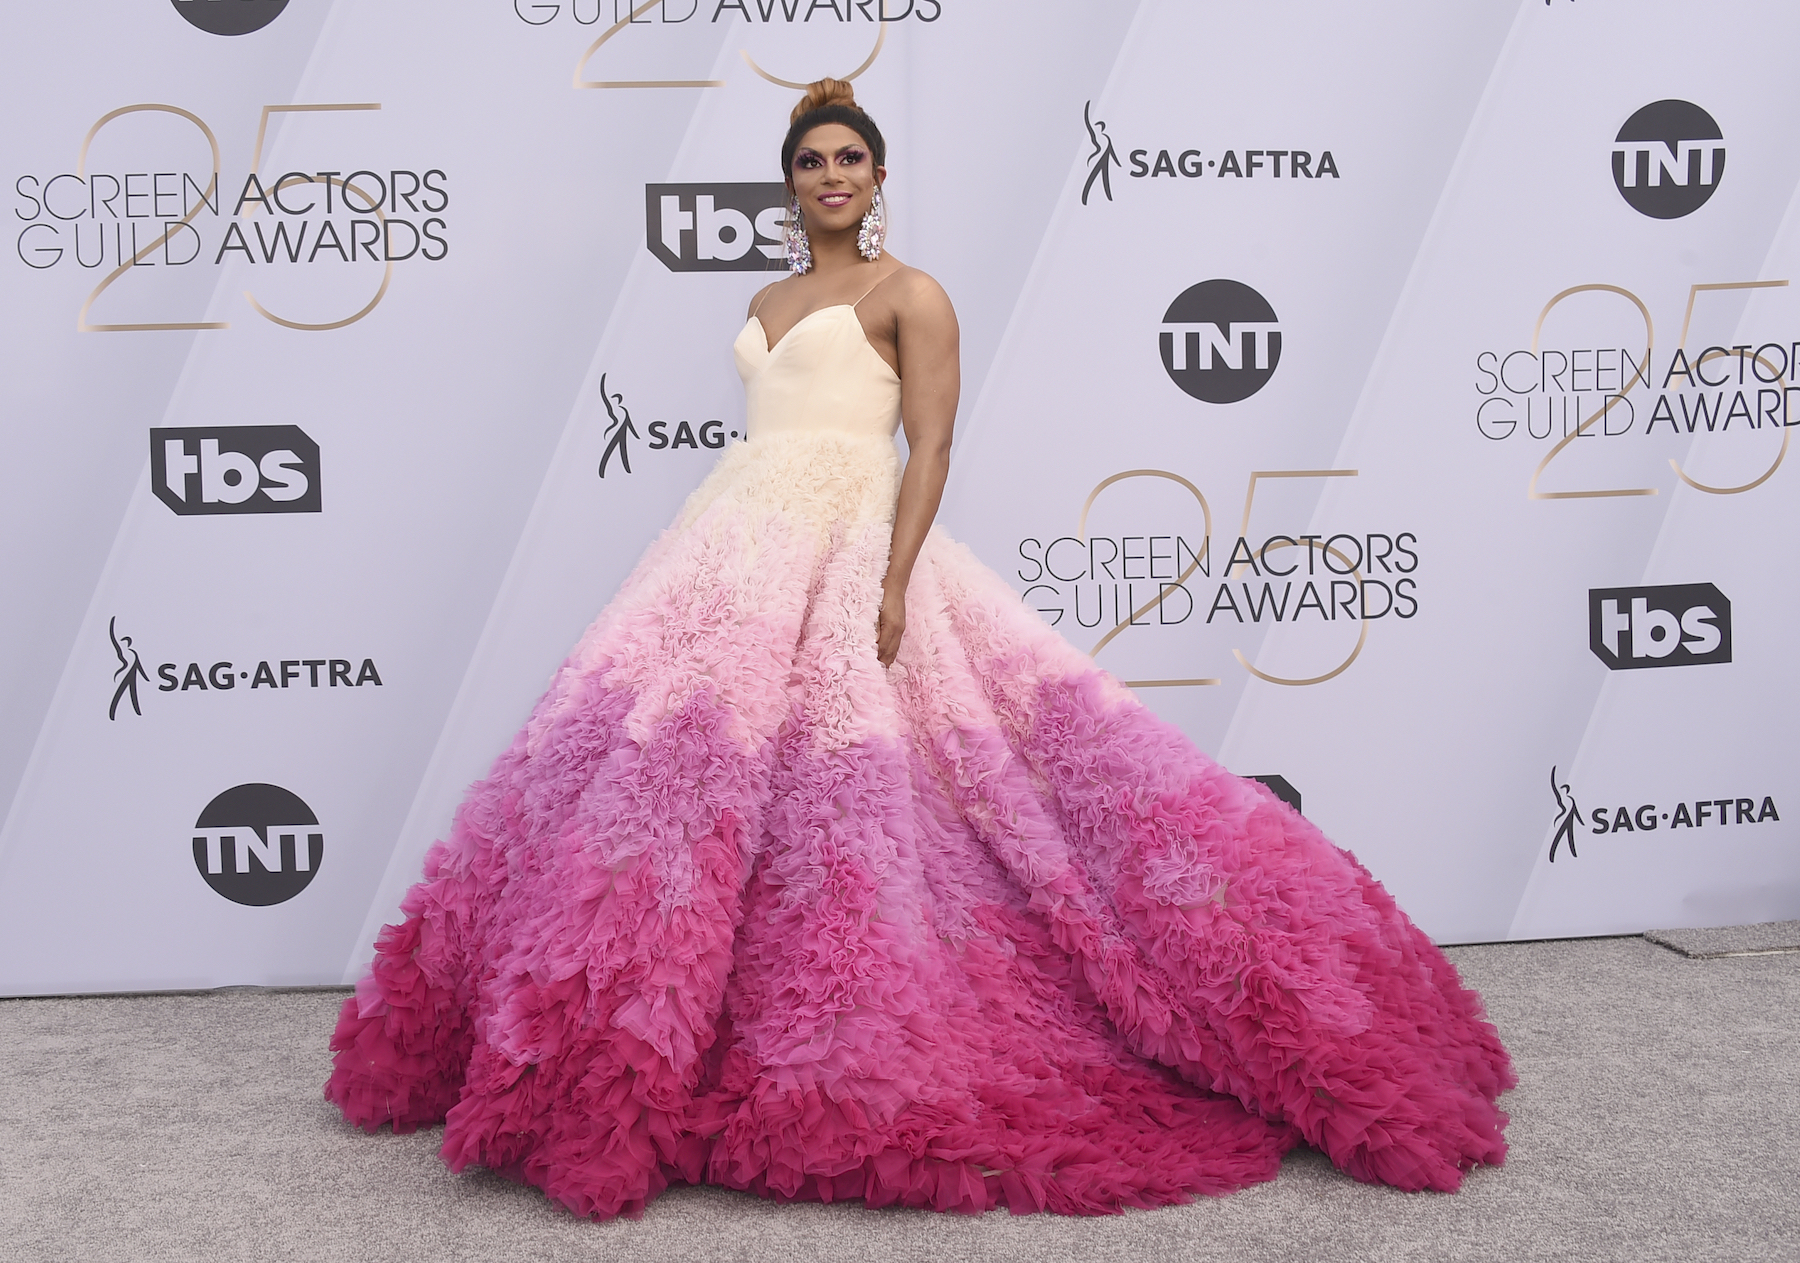 "<div class=""meta image-caption""><div class=""origin-logo origin-image ap""><span>AP</span></div><span class=""caption-text"">Shangela arrives at the 25th annual Screen Actors Guild Awards at the Shrine Auditorium & Expo Hall on Sunday, Jan. 27, 2019, in Los Angeles. (Jordan Strauss/Invision/AP)</span></div>"